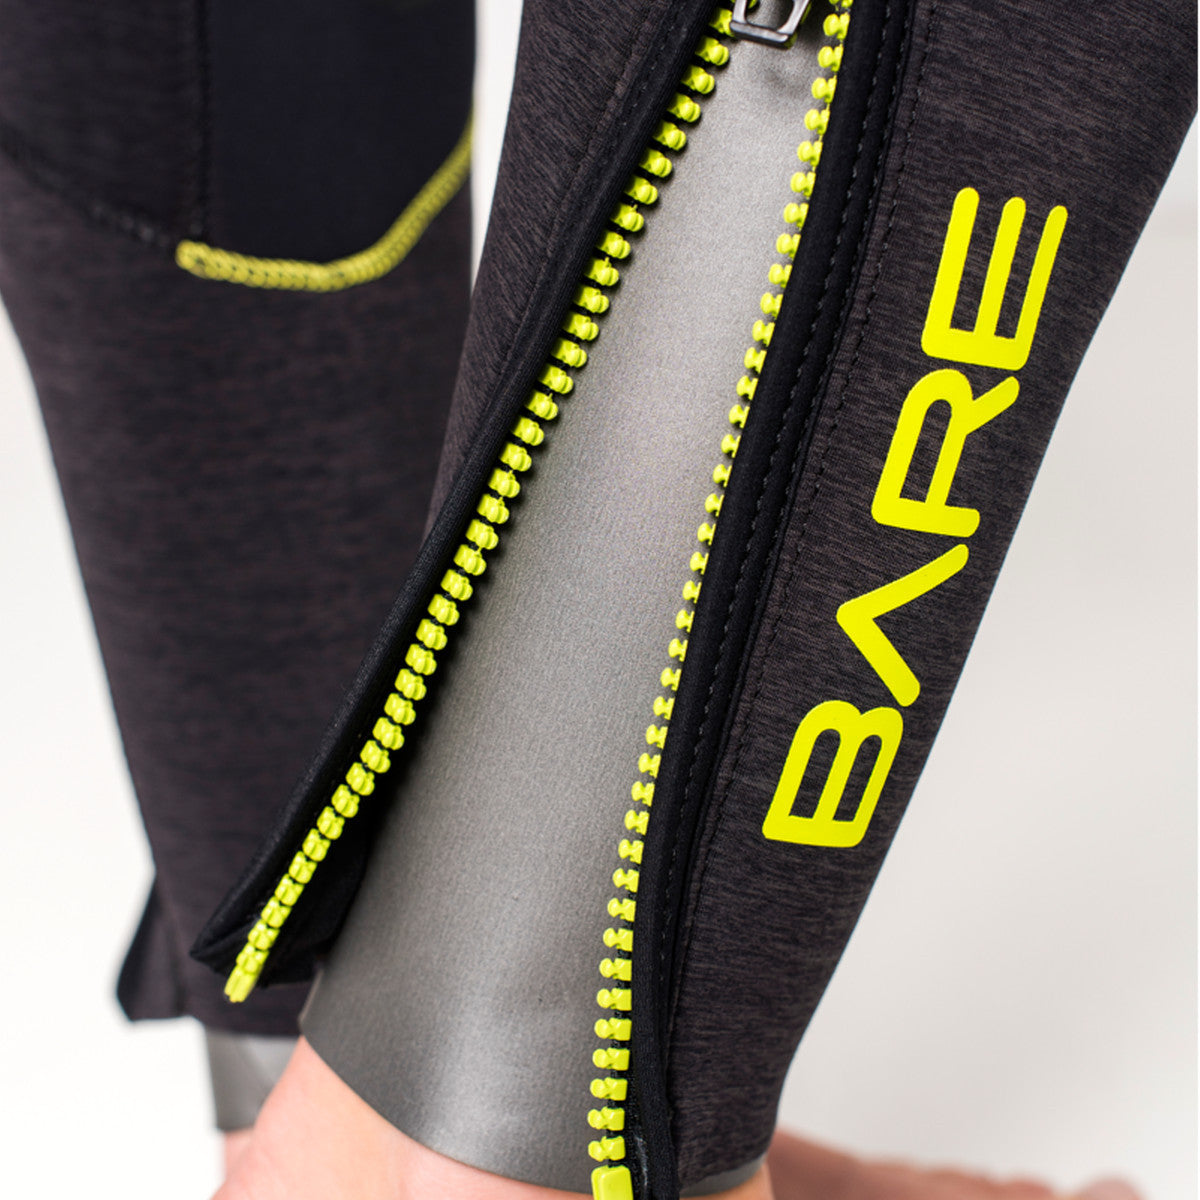 Bare Evoke 7mm Wetsuit: Womens - Oyster Diving Shop - 6